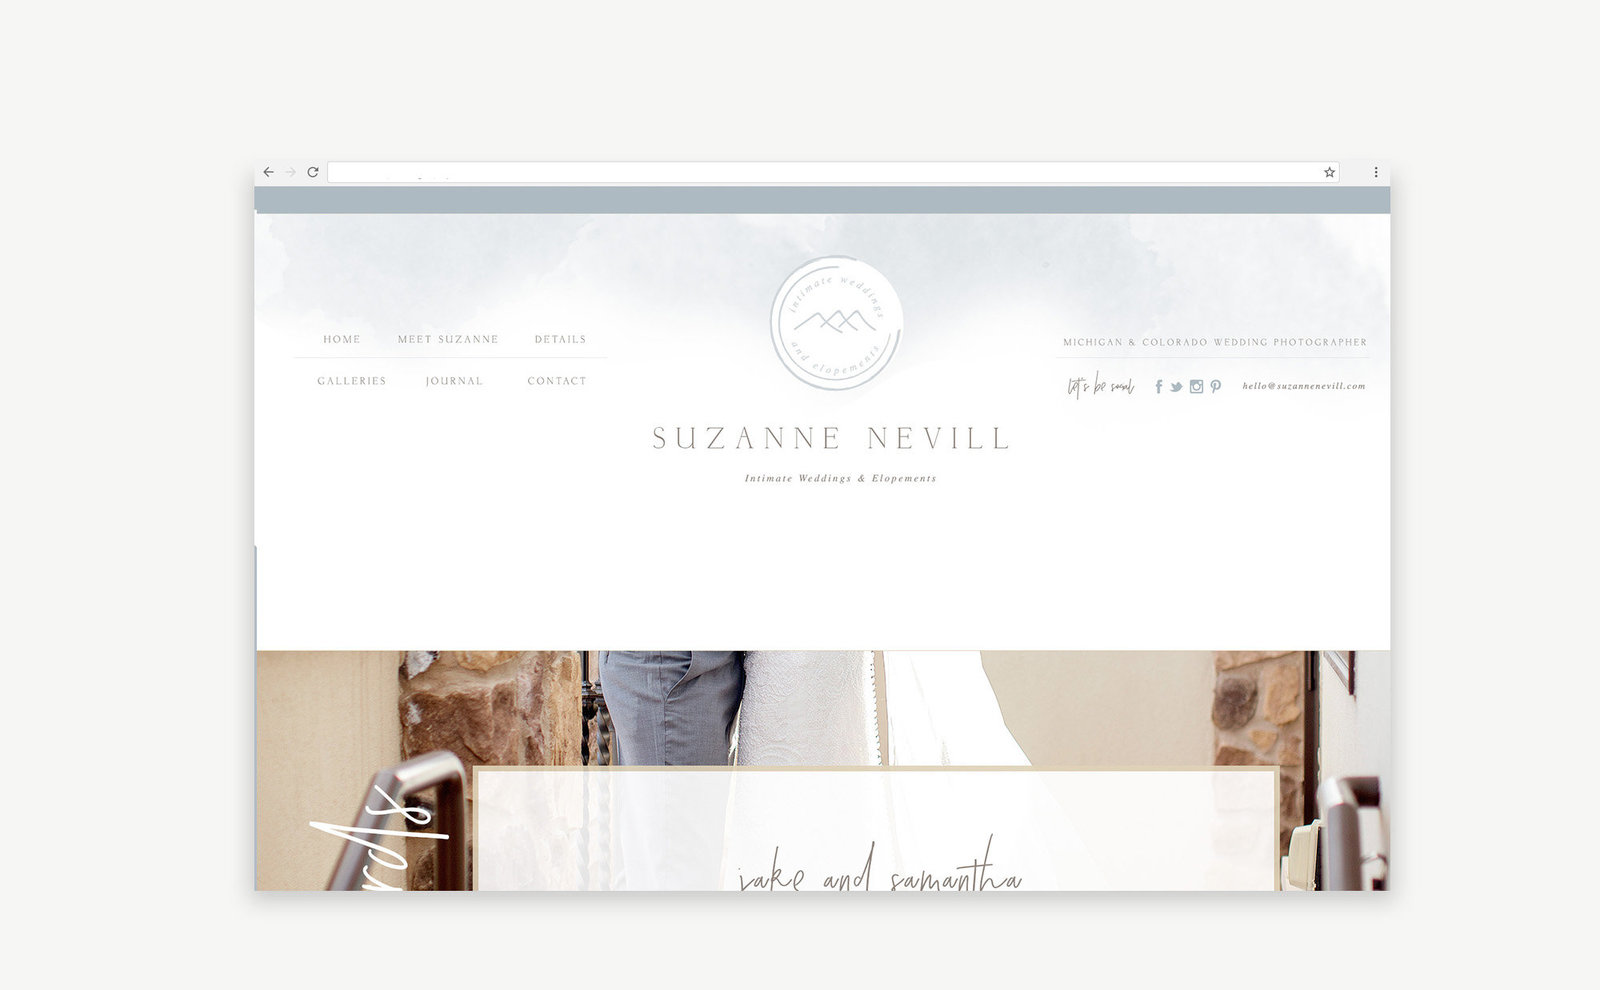 website-design-photographer-web-design-custom-showit5-colorado-wedding-photographer-suzanne-nevill-04